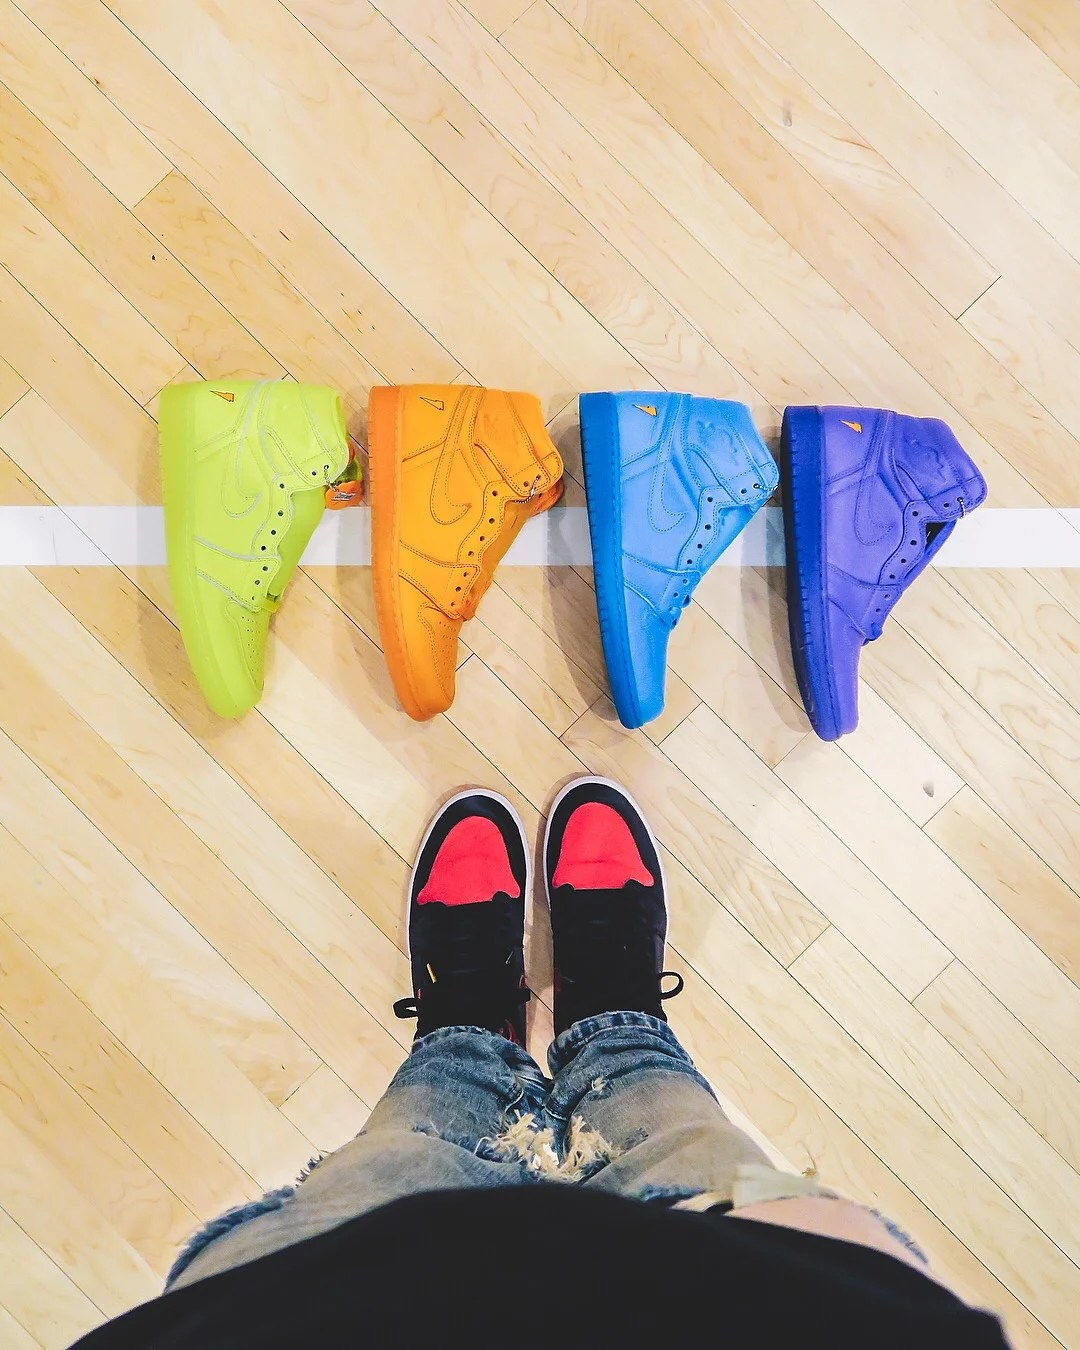 info for 0a87b e7786 Gatorade x Air Jordan 1 Collection Releases Early at Foot ...